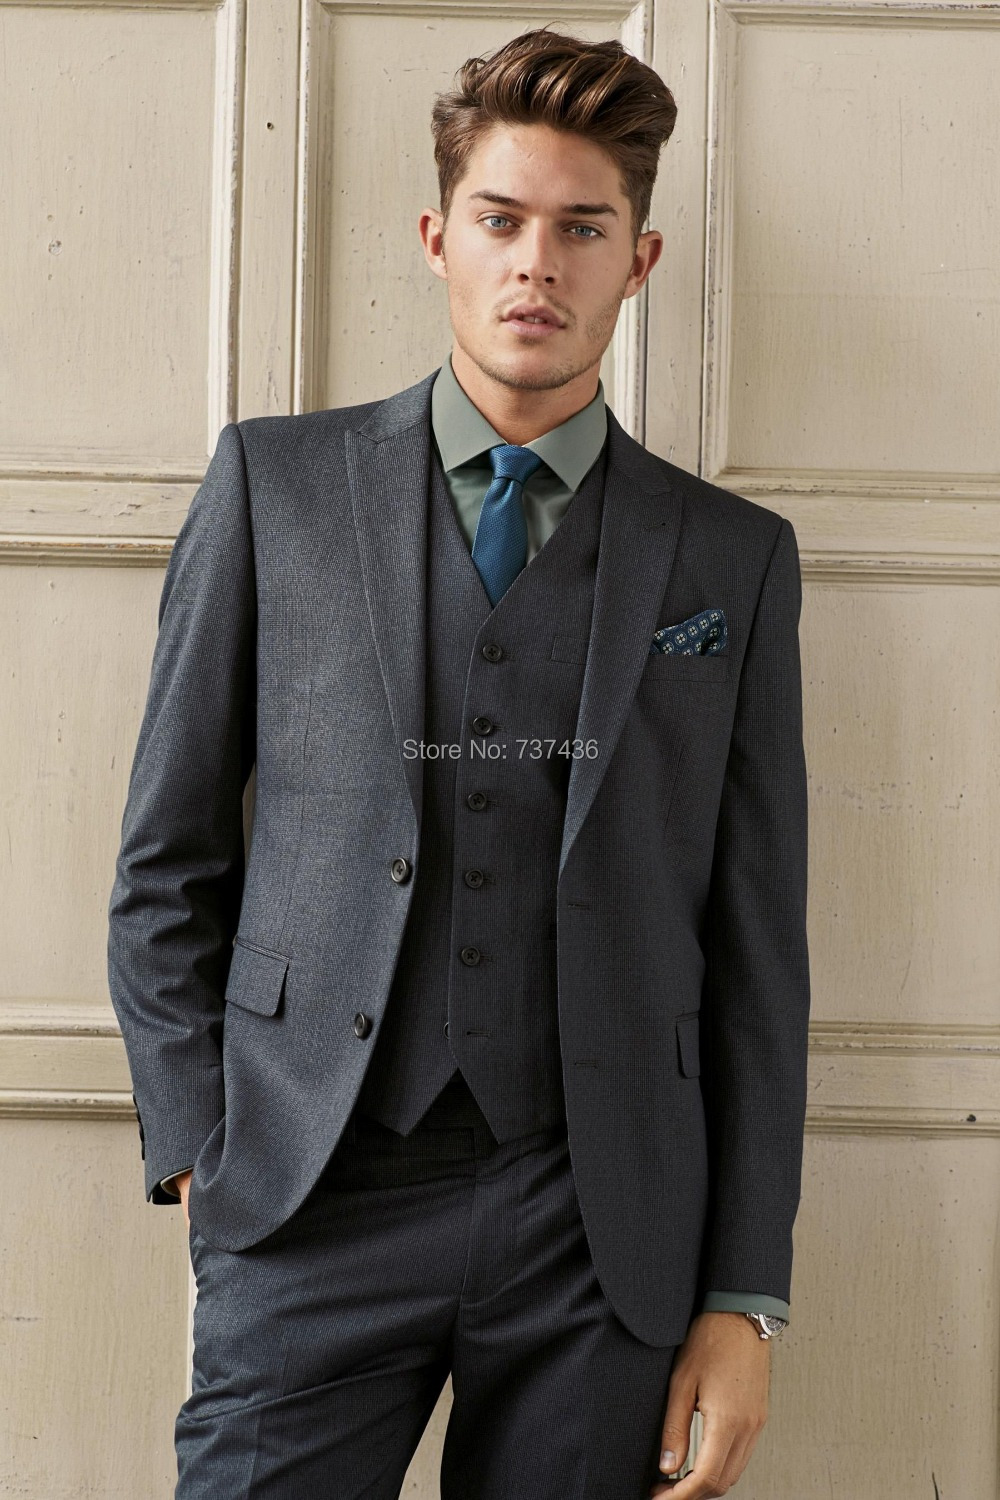 New Arrival Custom Made Men's Slim Business/Wedding Suits 2015